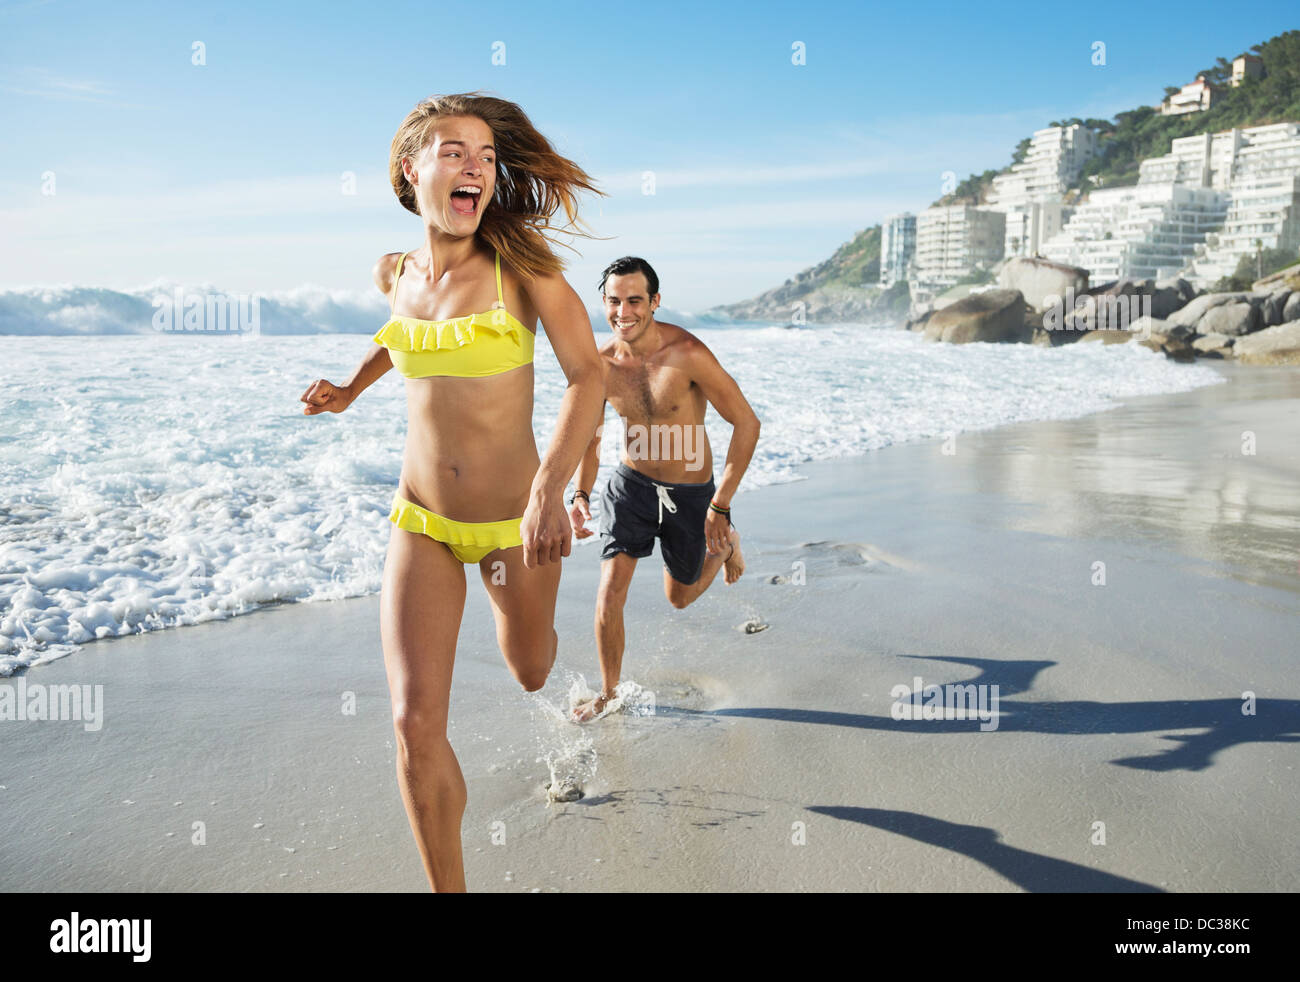 Man chasing happy woman on beach - Stock Image